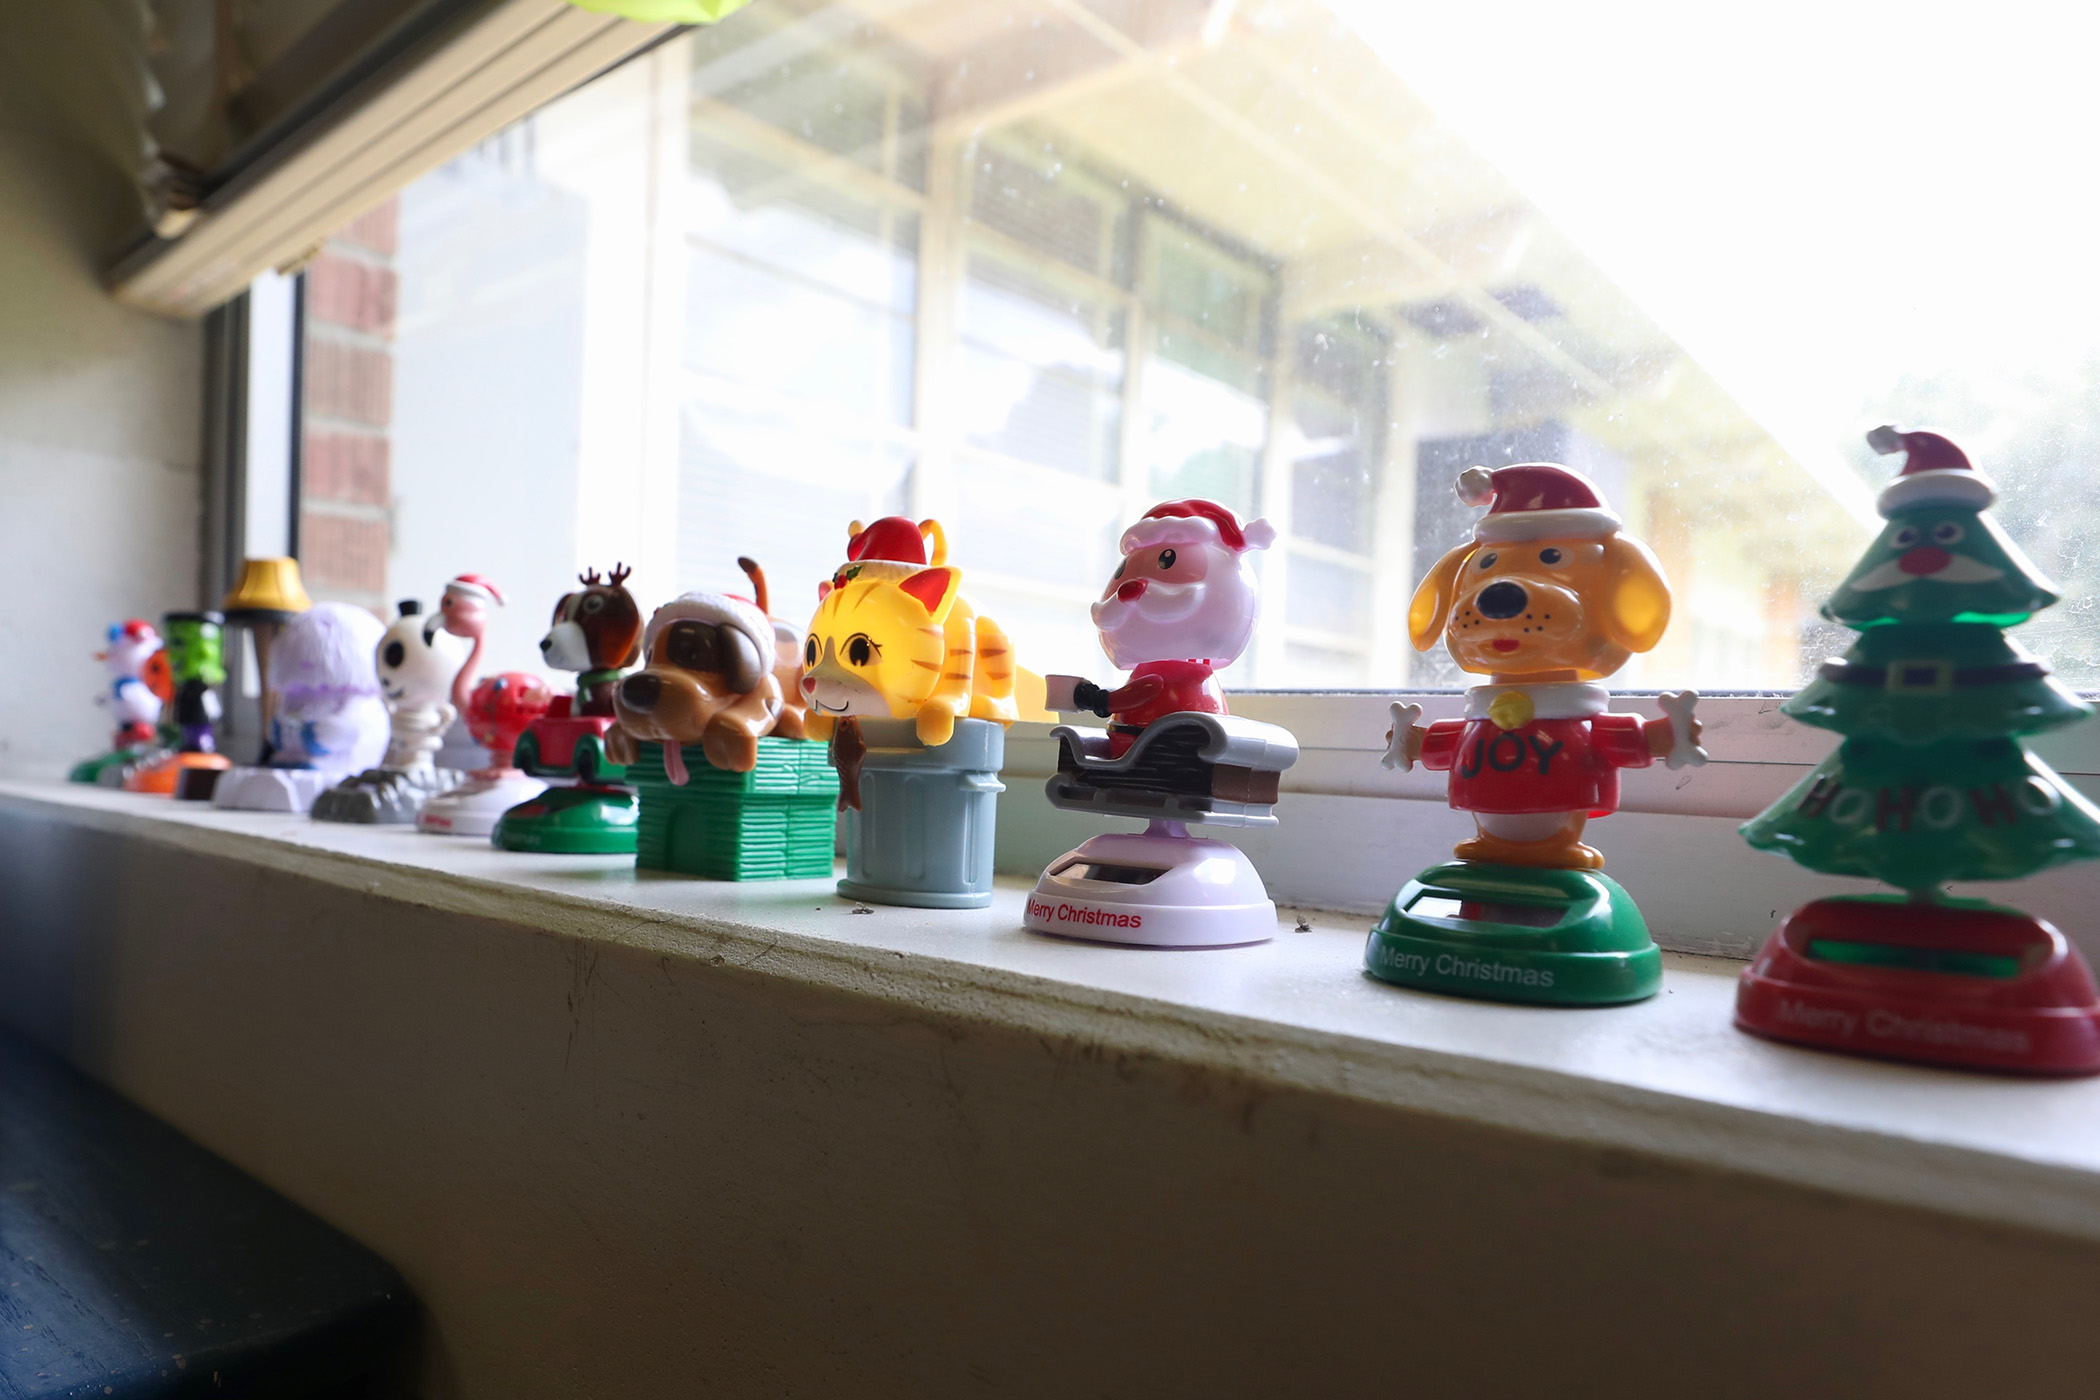 This is a series of bobbleheads in a classroom at QJH.